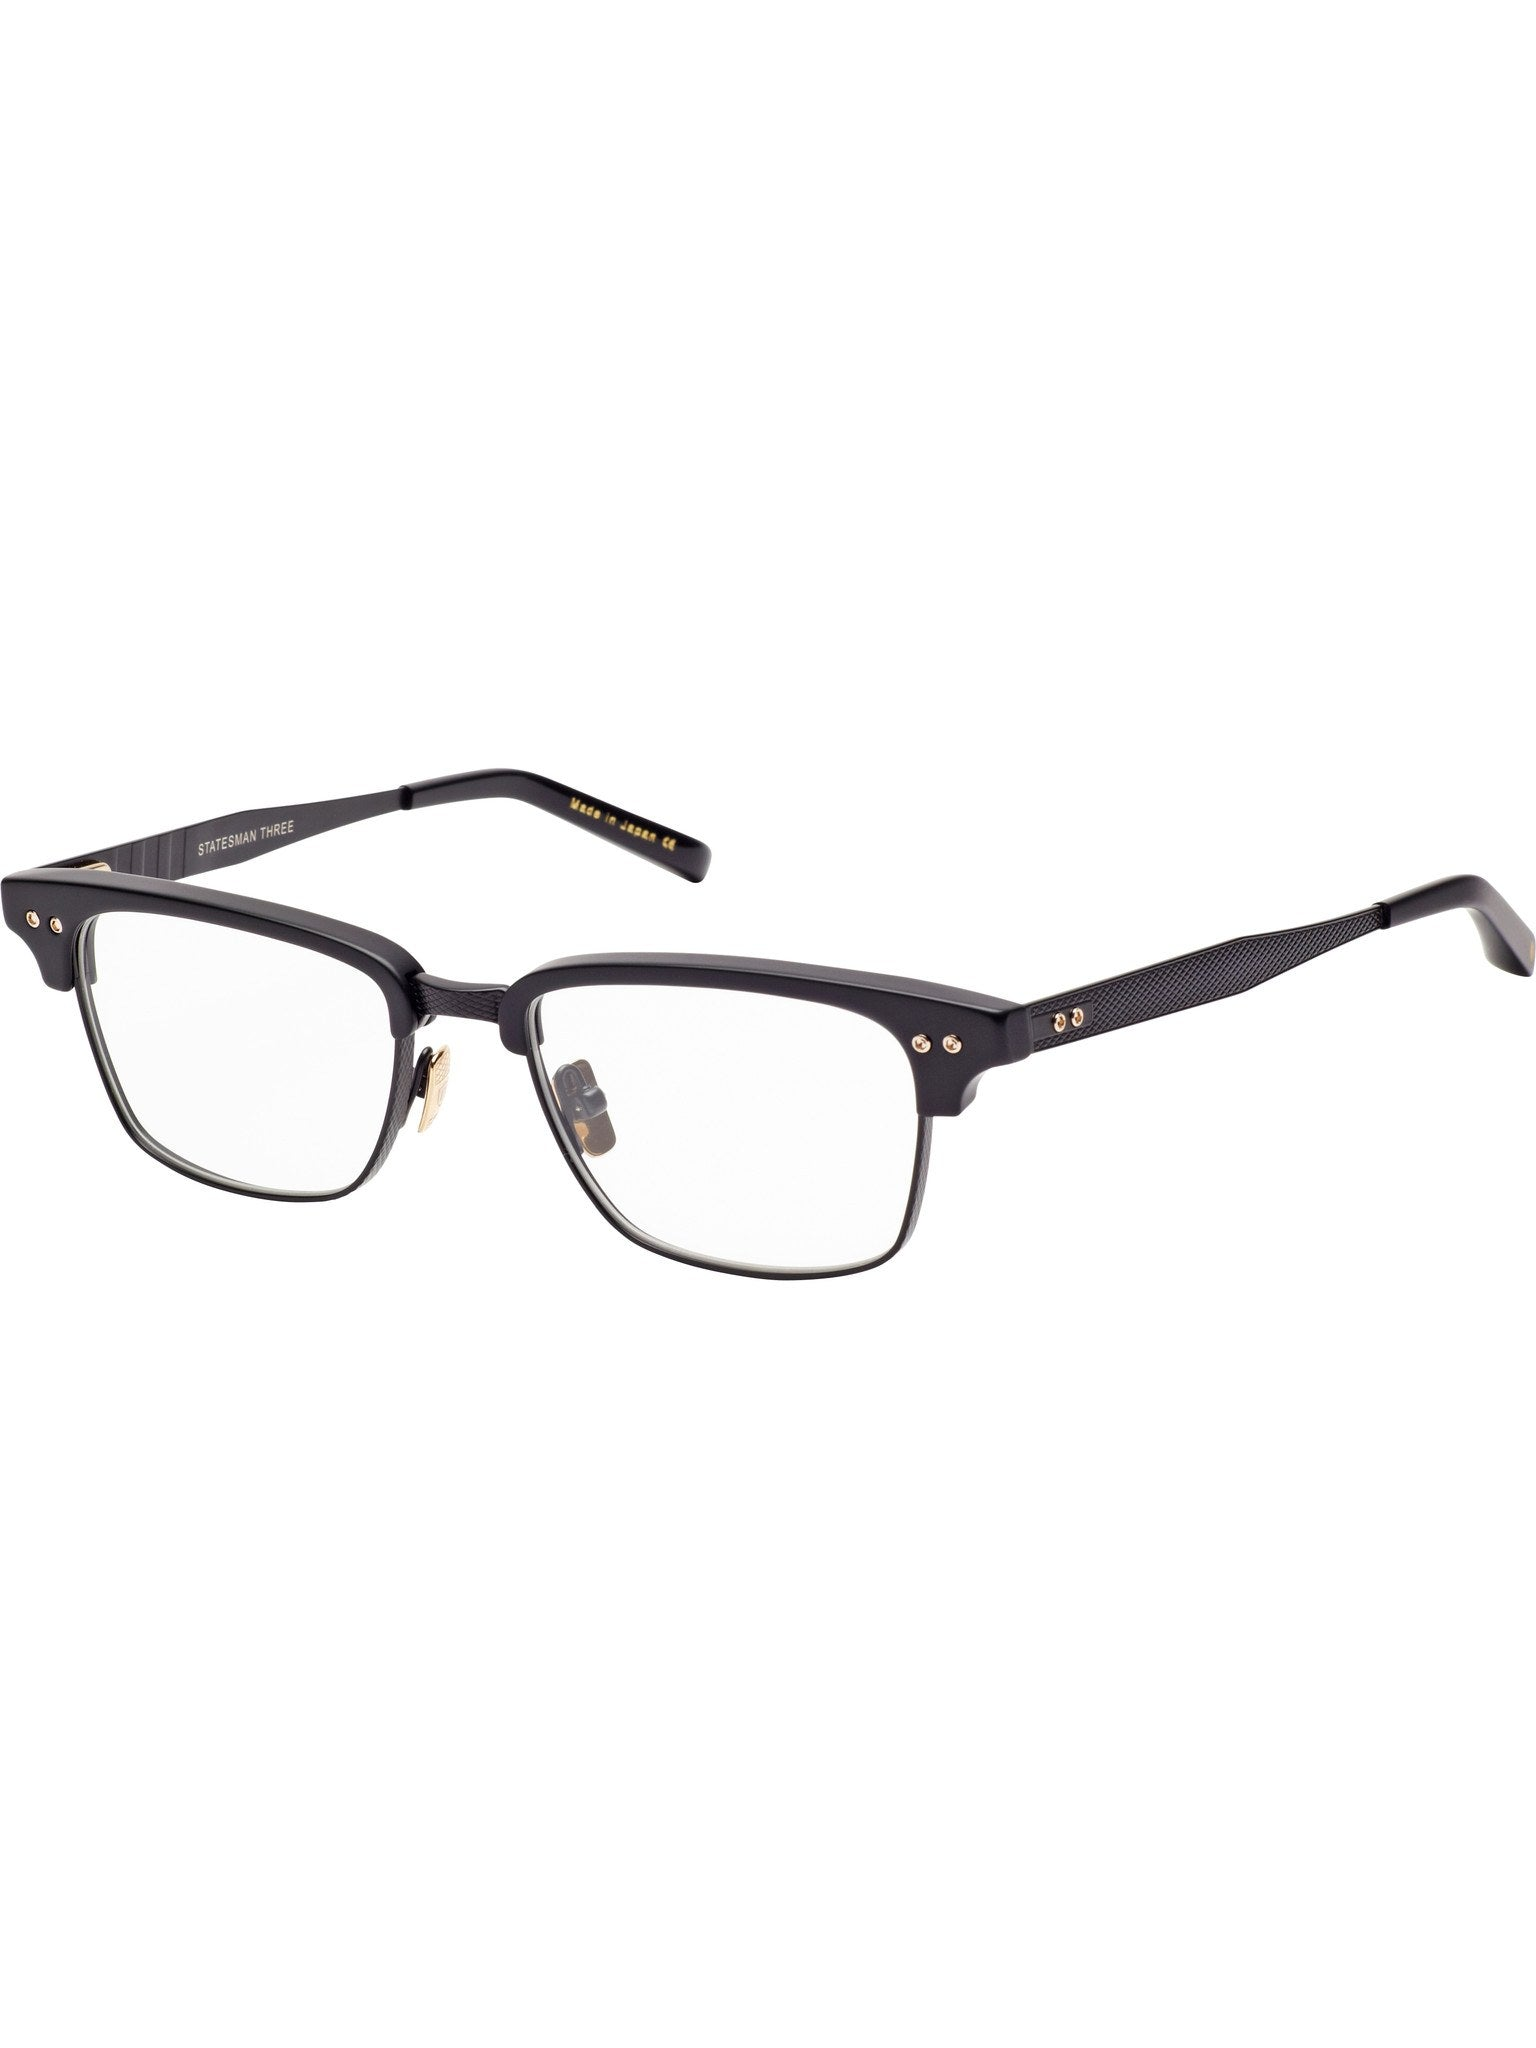 32741924da7 Optical Frame - Dita Statesman Three DRX-2064C